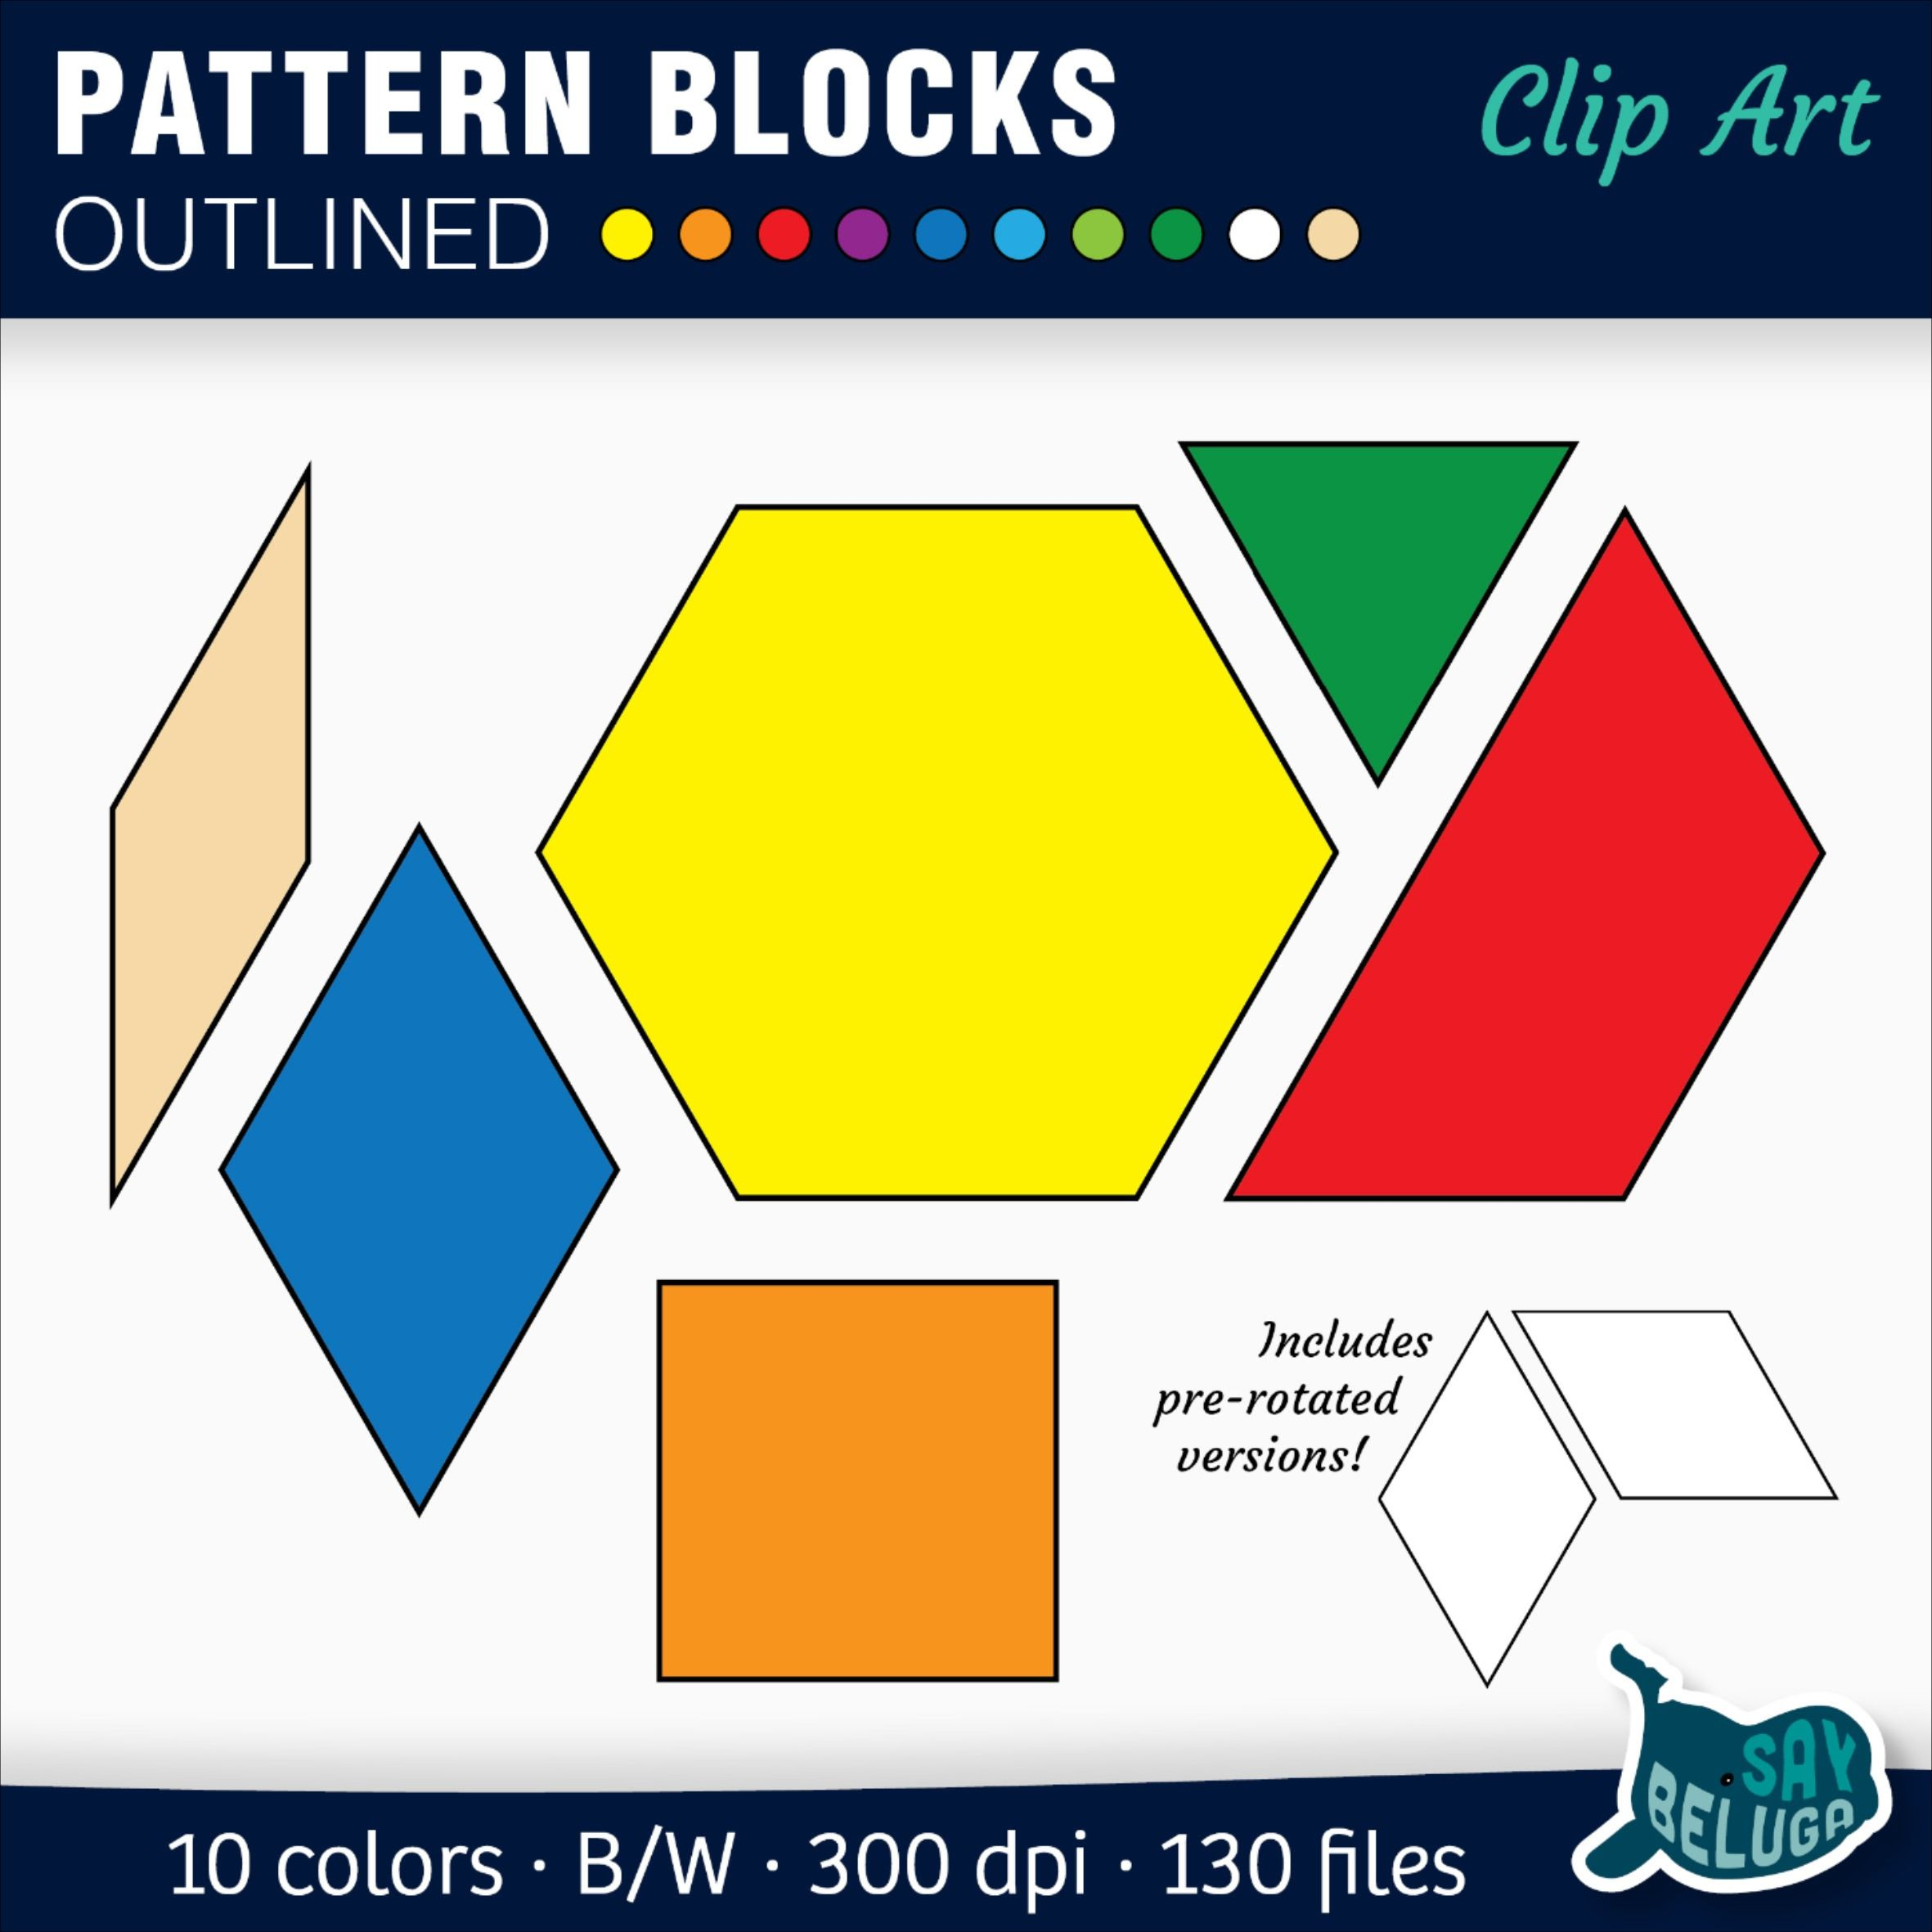 Pattern Blocks Black Outlines In 10 Colors Math Clipart Elementary Resources Clip Art [ 2362 x 2362 Pixel ]